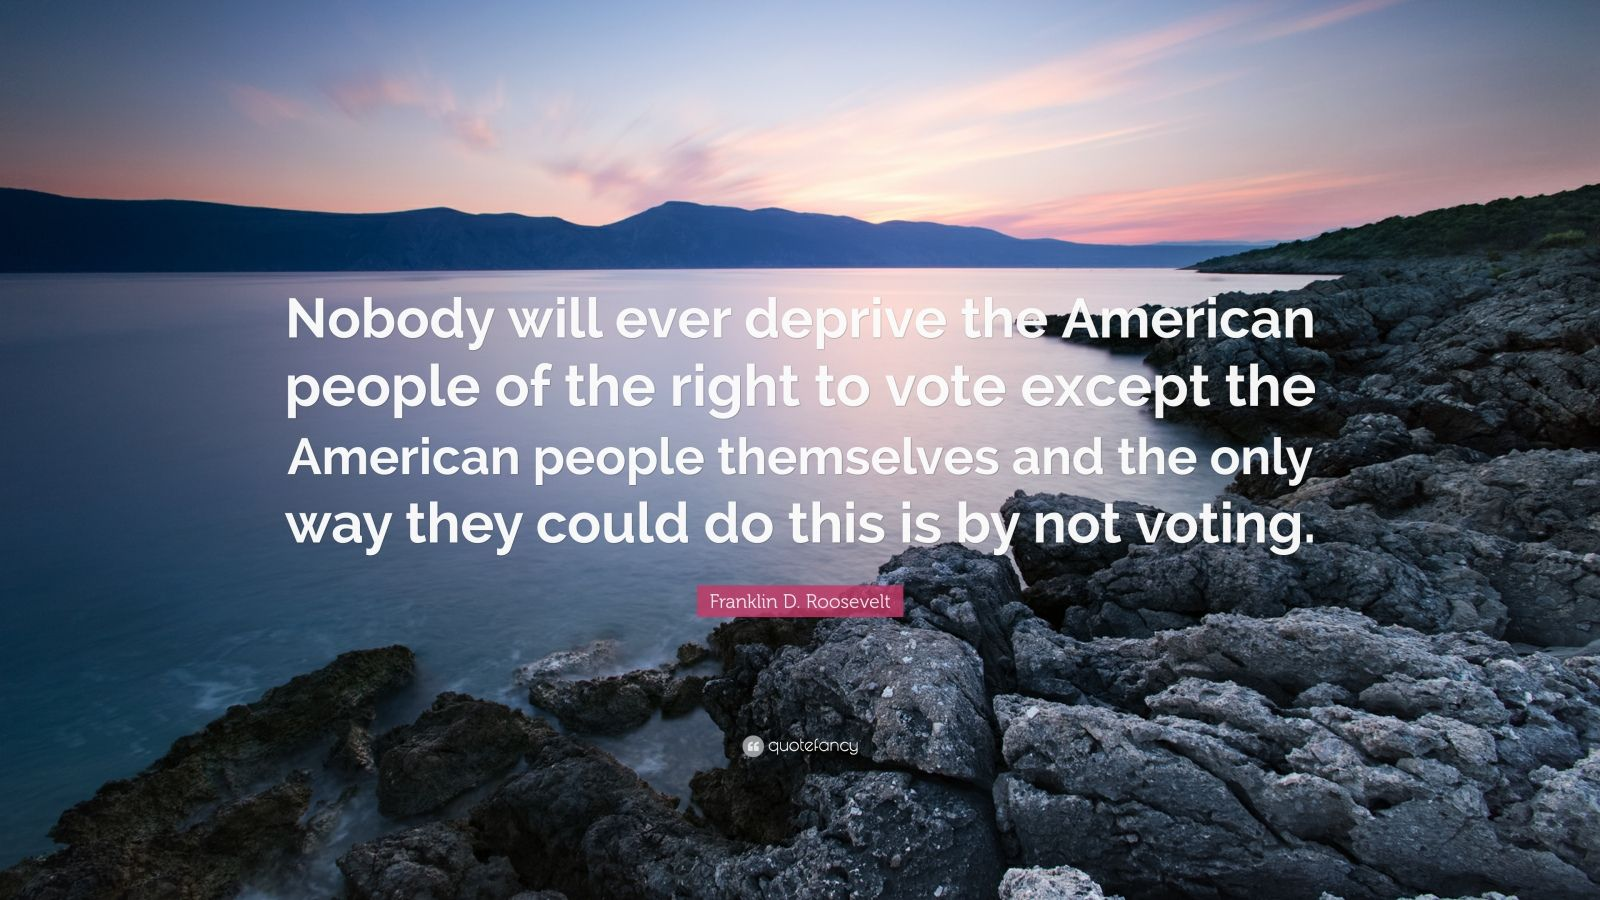 "Franklin D. Roosevelt Quote: ""Nobody will ever deprive the American people of the right to vote except the American people themselves and the only way they could do this is by not voting."""